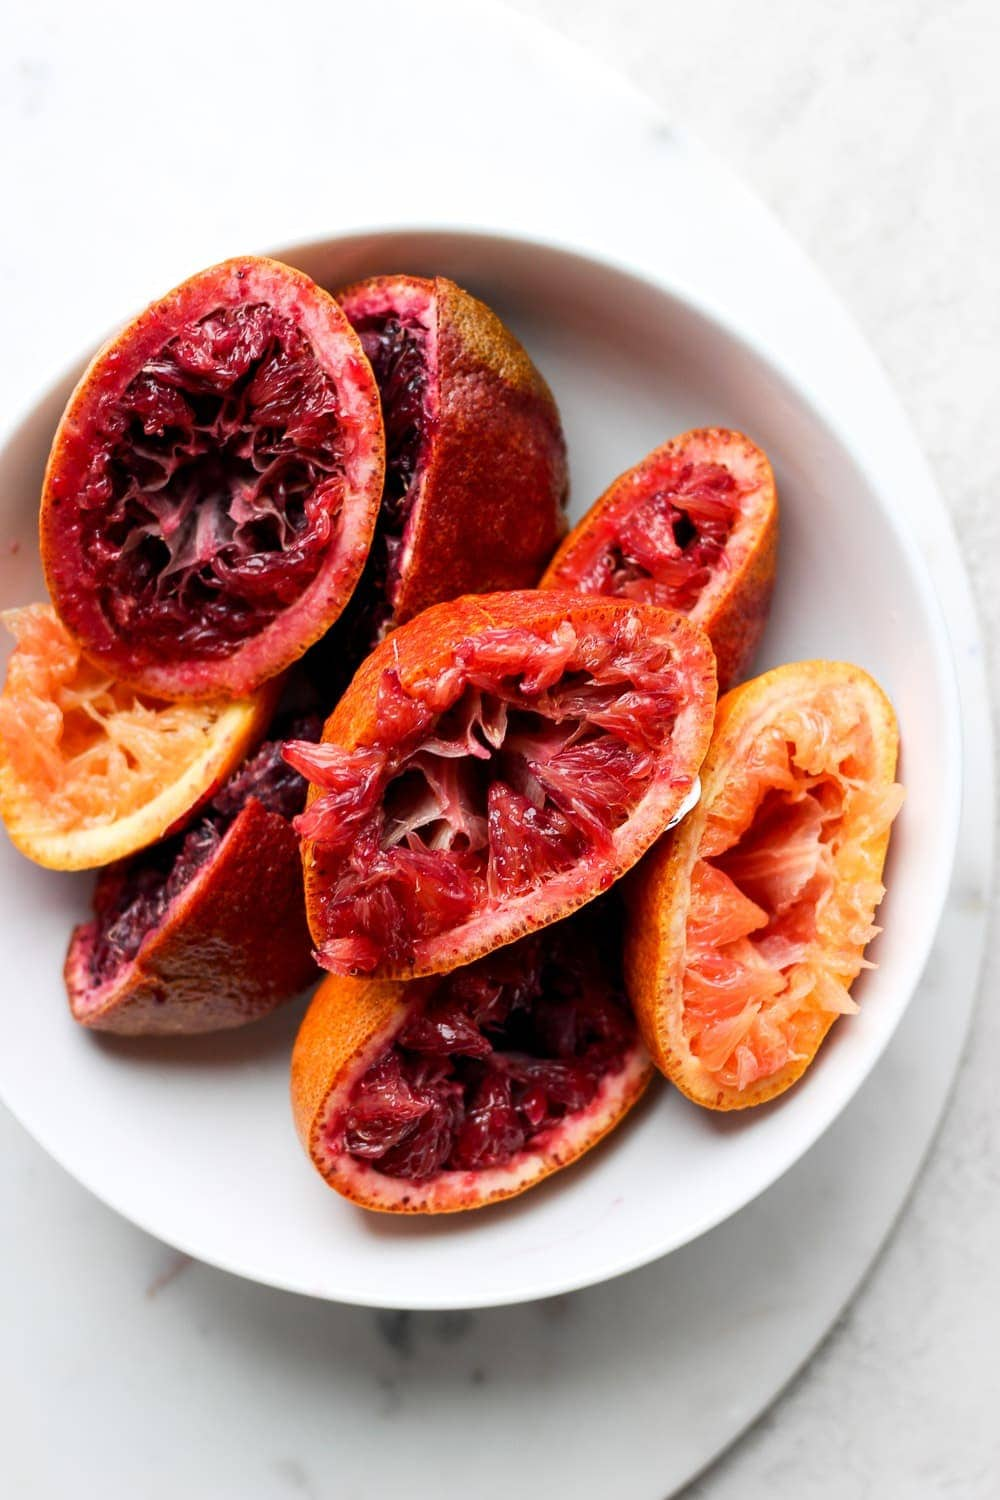 Juiced blood oranges